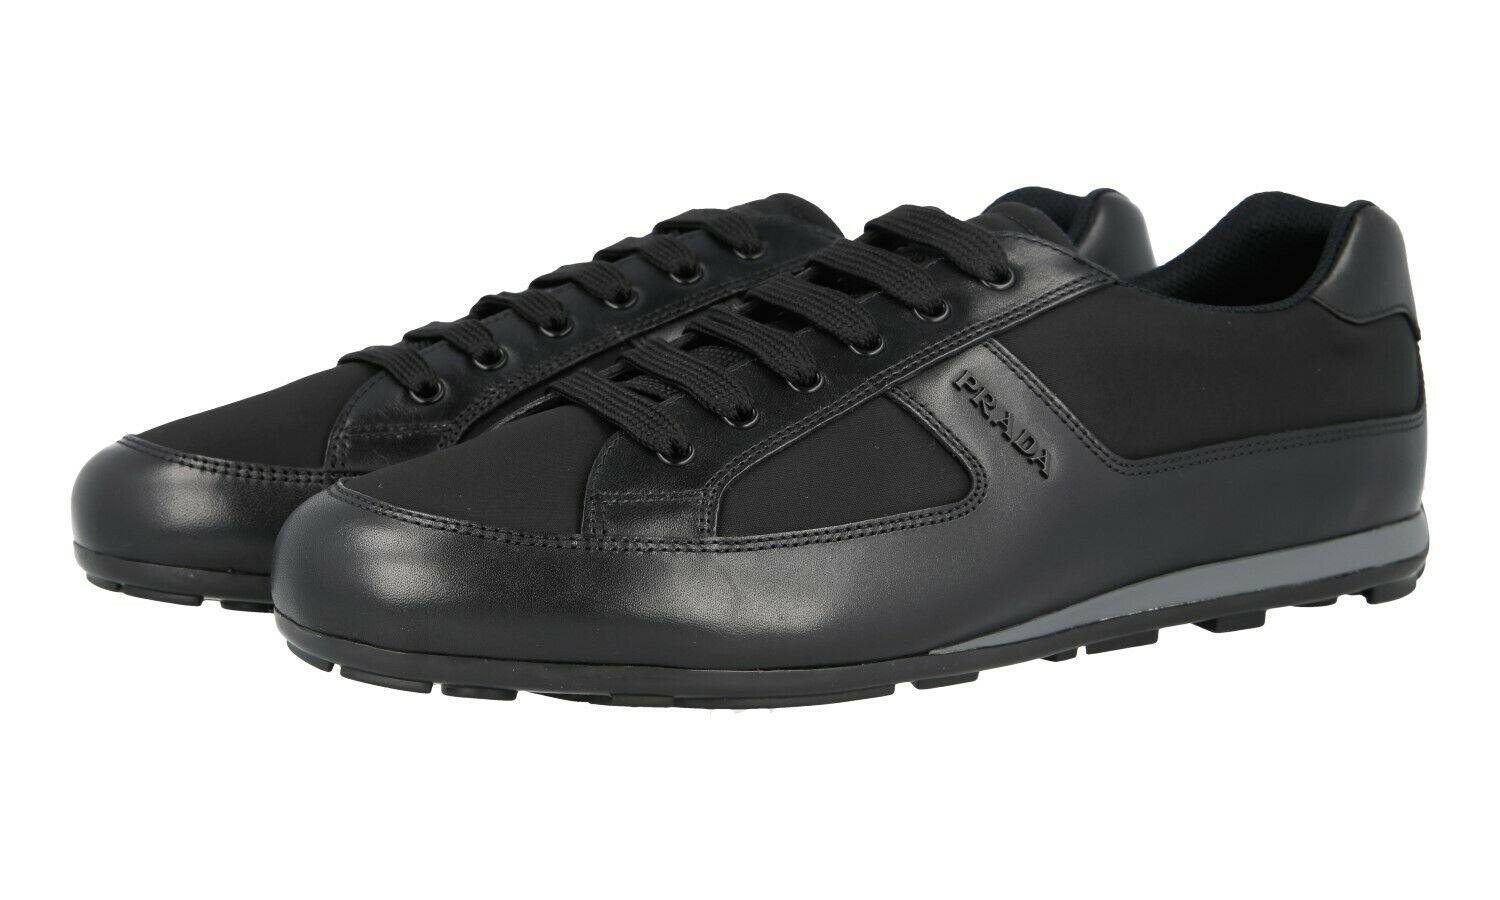 AUTH PRADA TRAINERS SHOES 4E3231 BLACK LEATHER + NYLON NEW 9,5 43,5 44